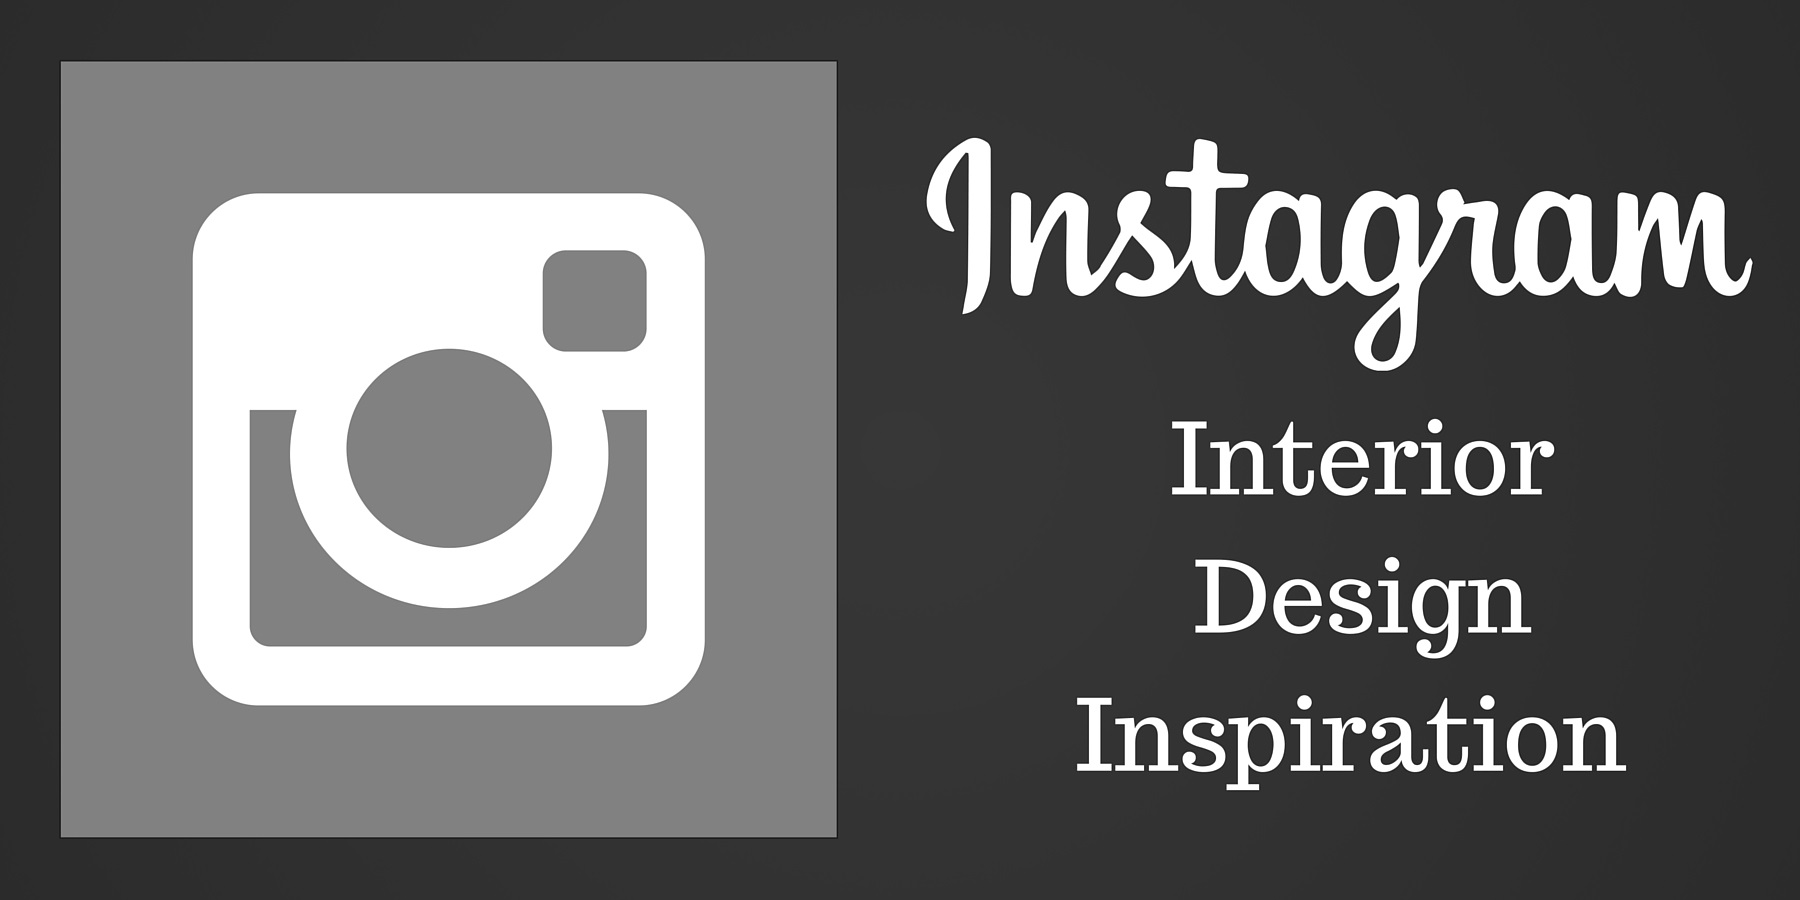 Interior Design Inspiration on Instagram -